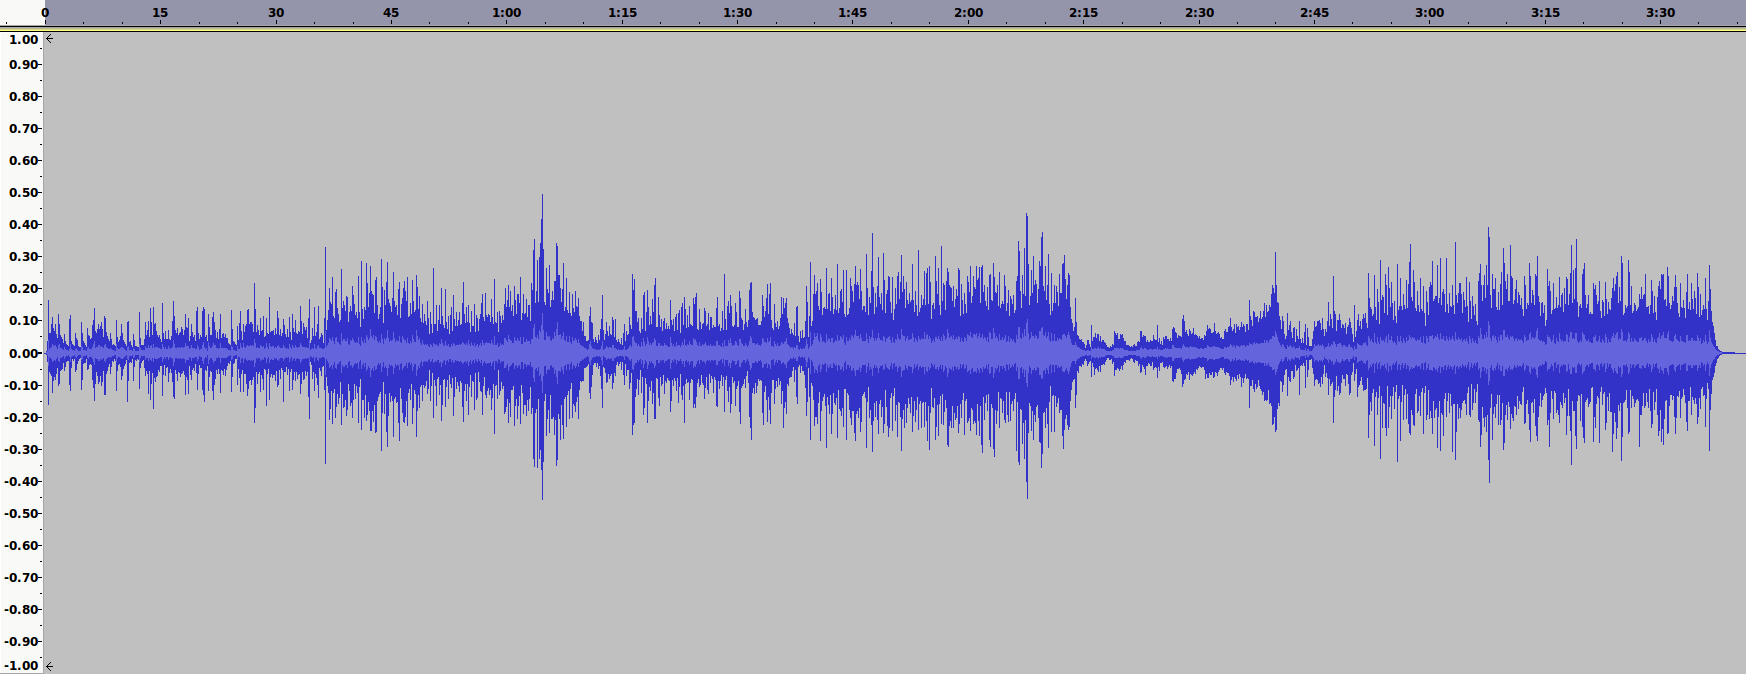 Experimental Differences in Audio Compression Formats - The Cog